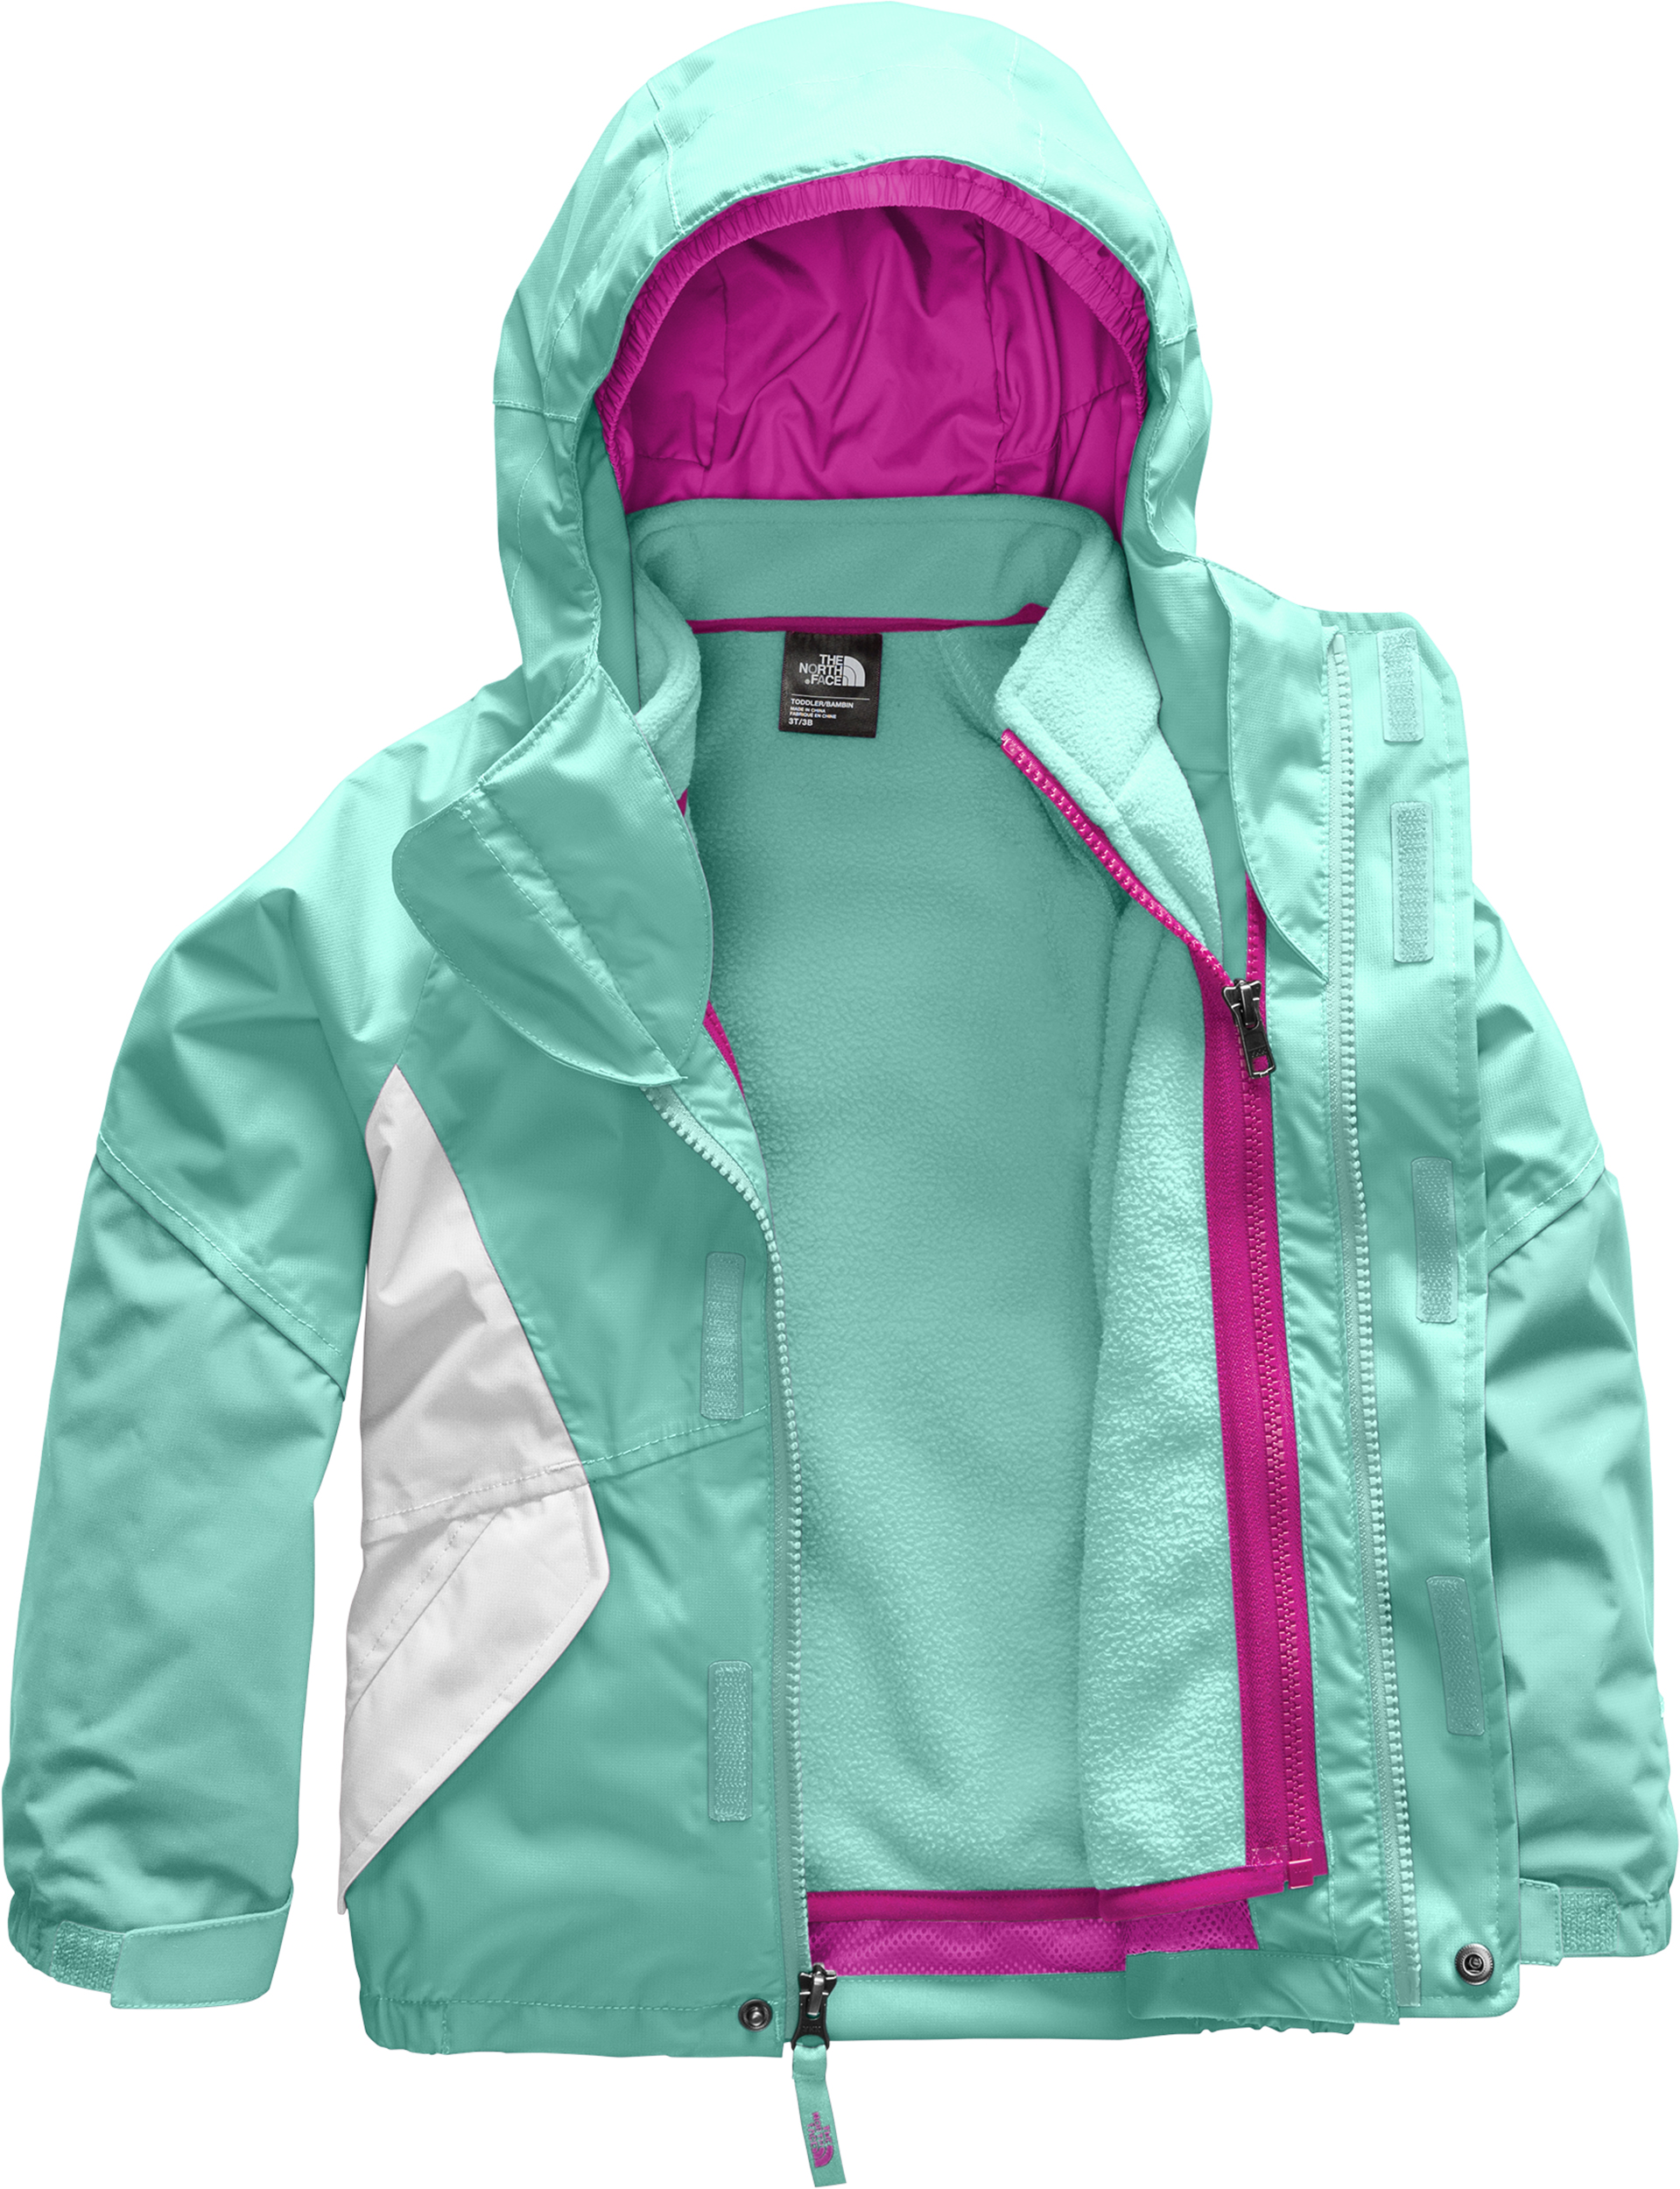 c7492b4e4 The North Face Kira Triclimate Jacket - Girls  - Infants to Children